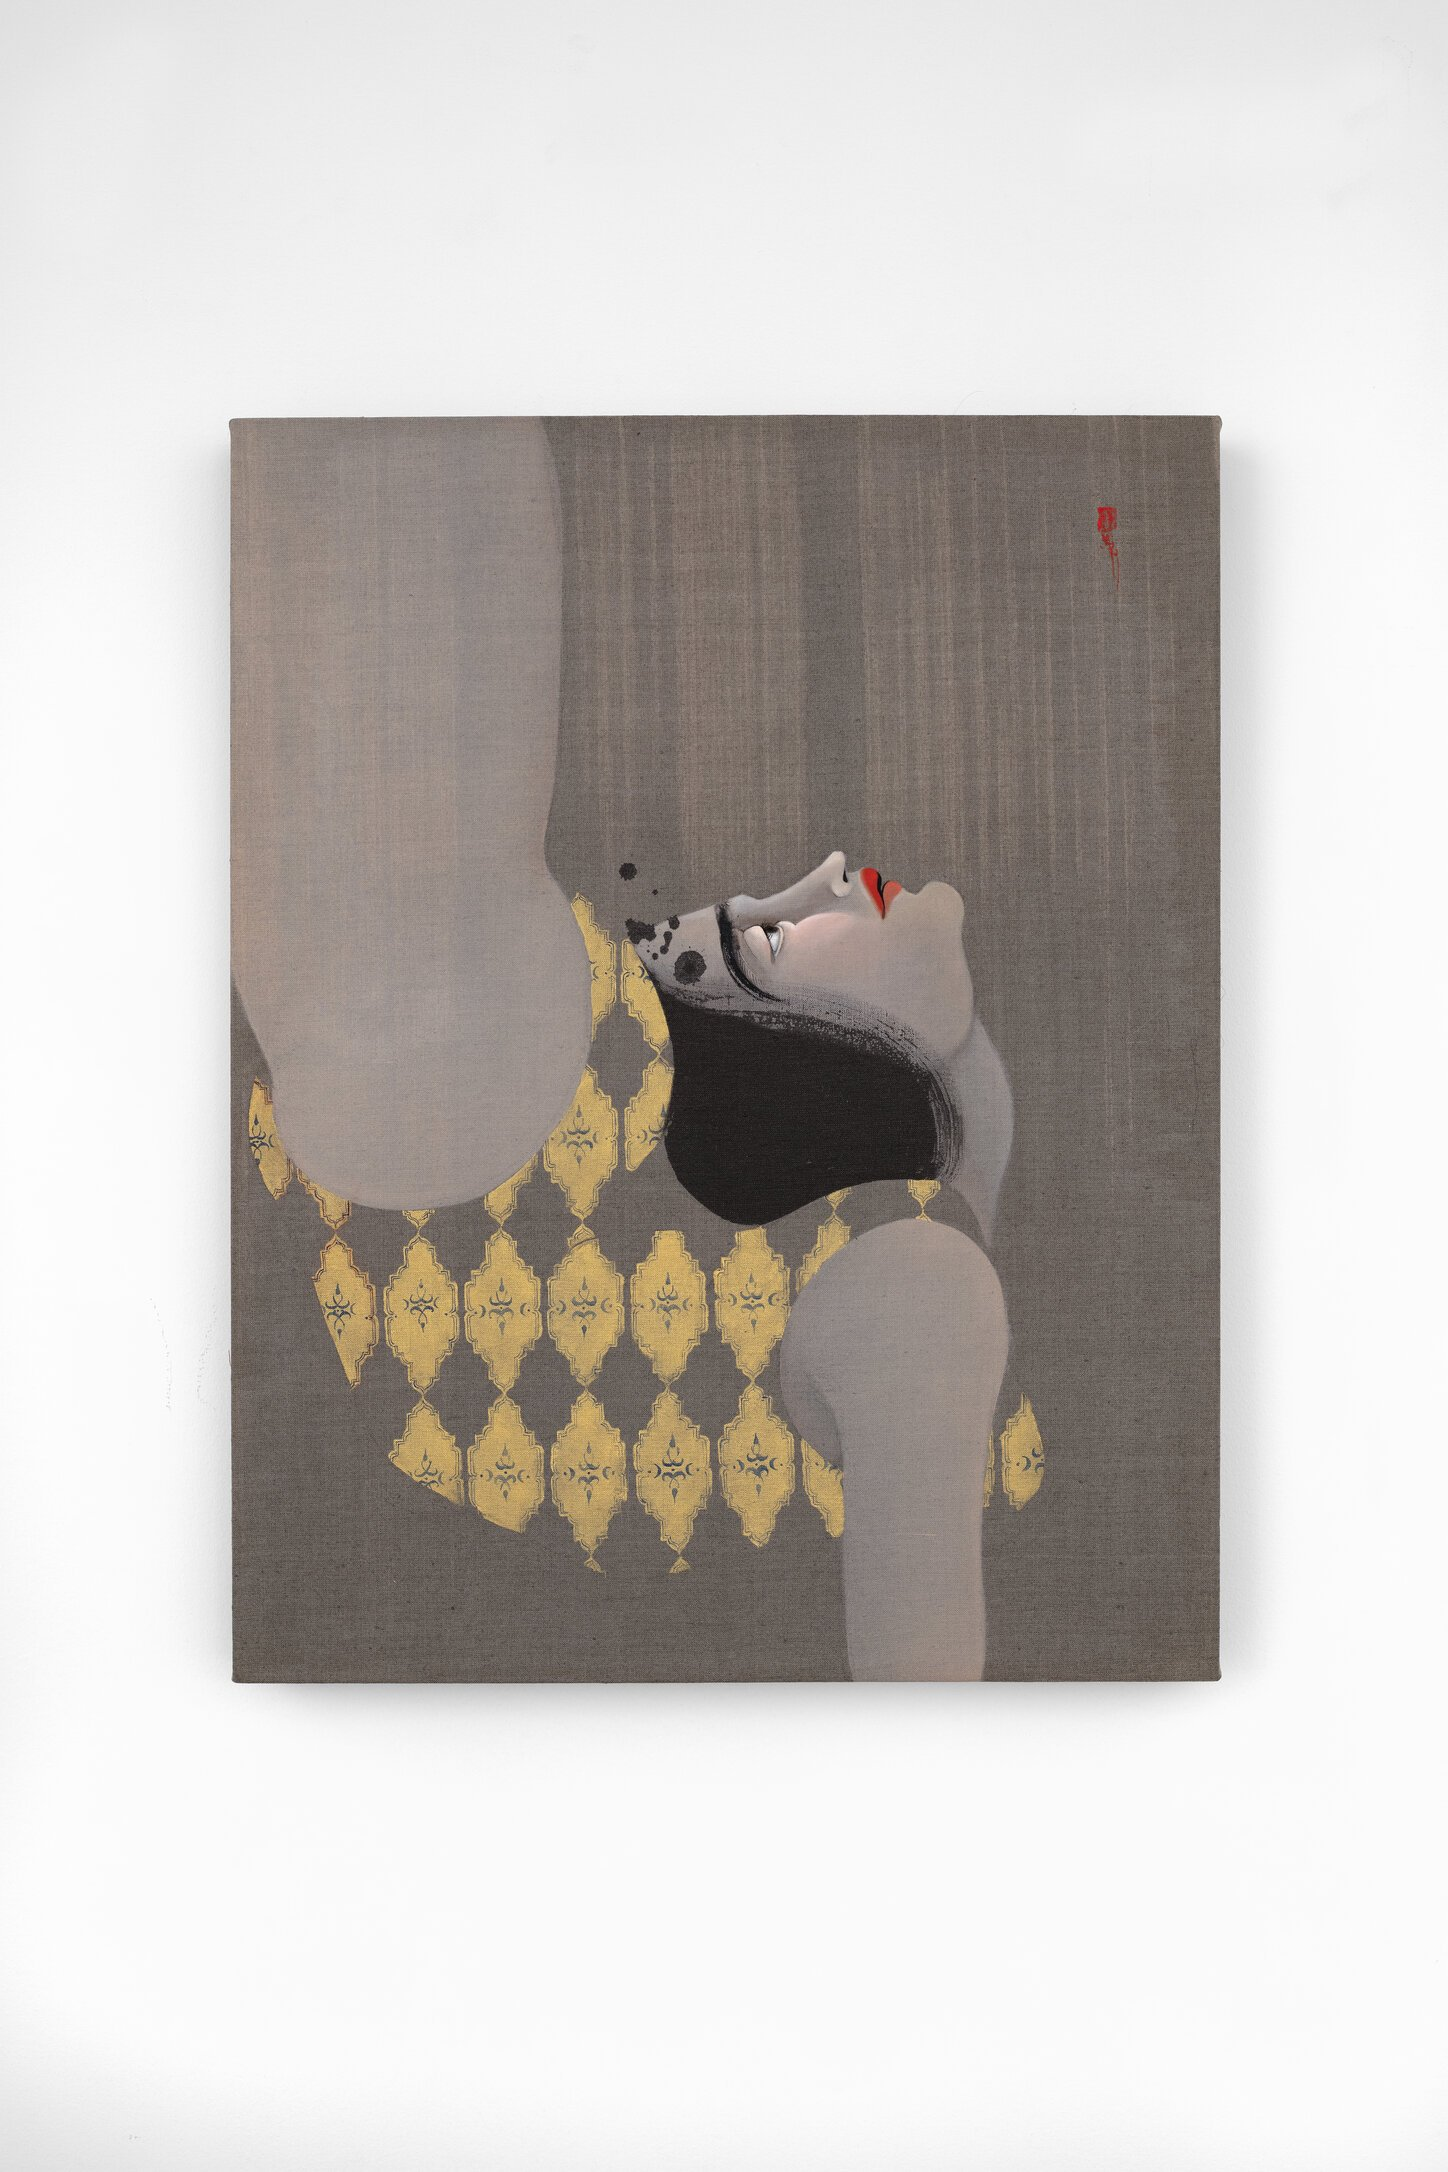 Hayv Kahraman, 'Not Quite Human 6,' 2019. Oil on linen. 32 1/8 x 25 3/8 x 3 1/8 in. Jack Shainman Gallery, NY© Hayv Kahraman. Courtesy of the artist and Jack Shainman Gallery, New York.